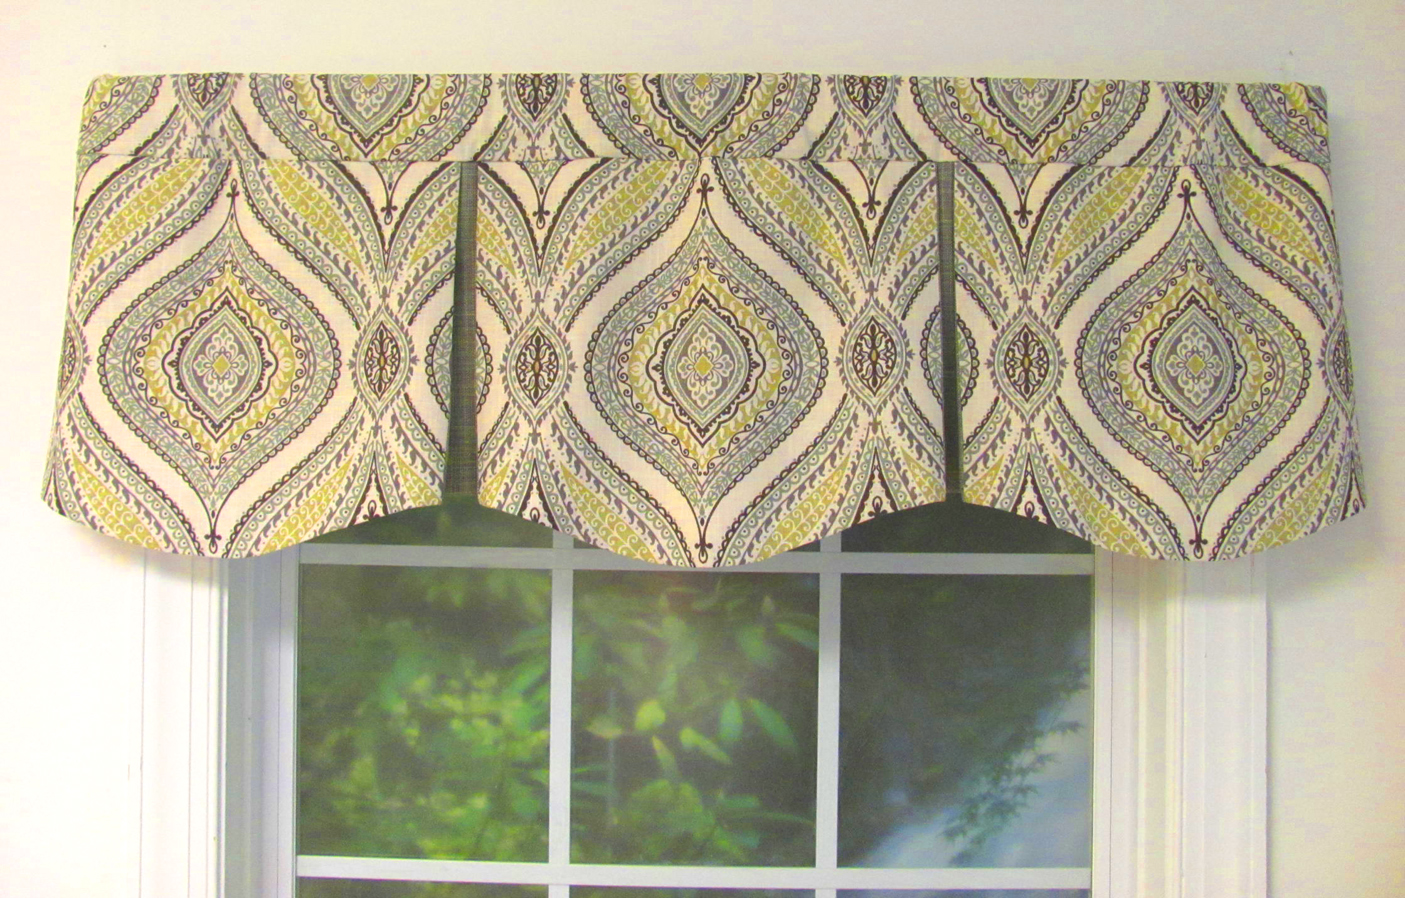 Bathroom Valance Ideas Curtains Drapes And More From The Curtain Shop